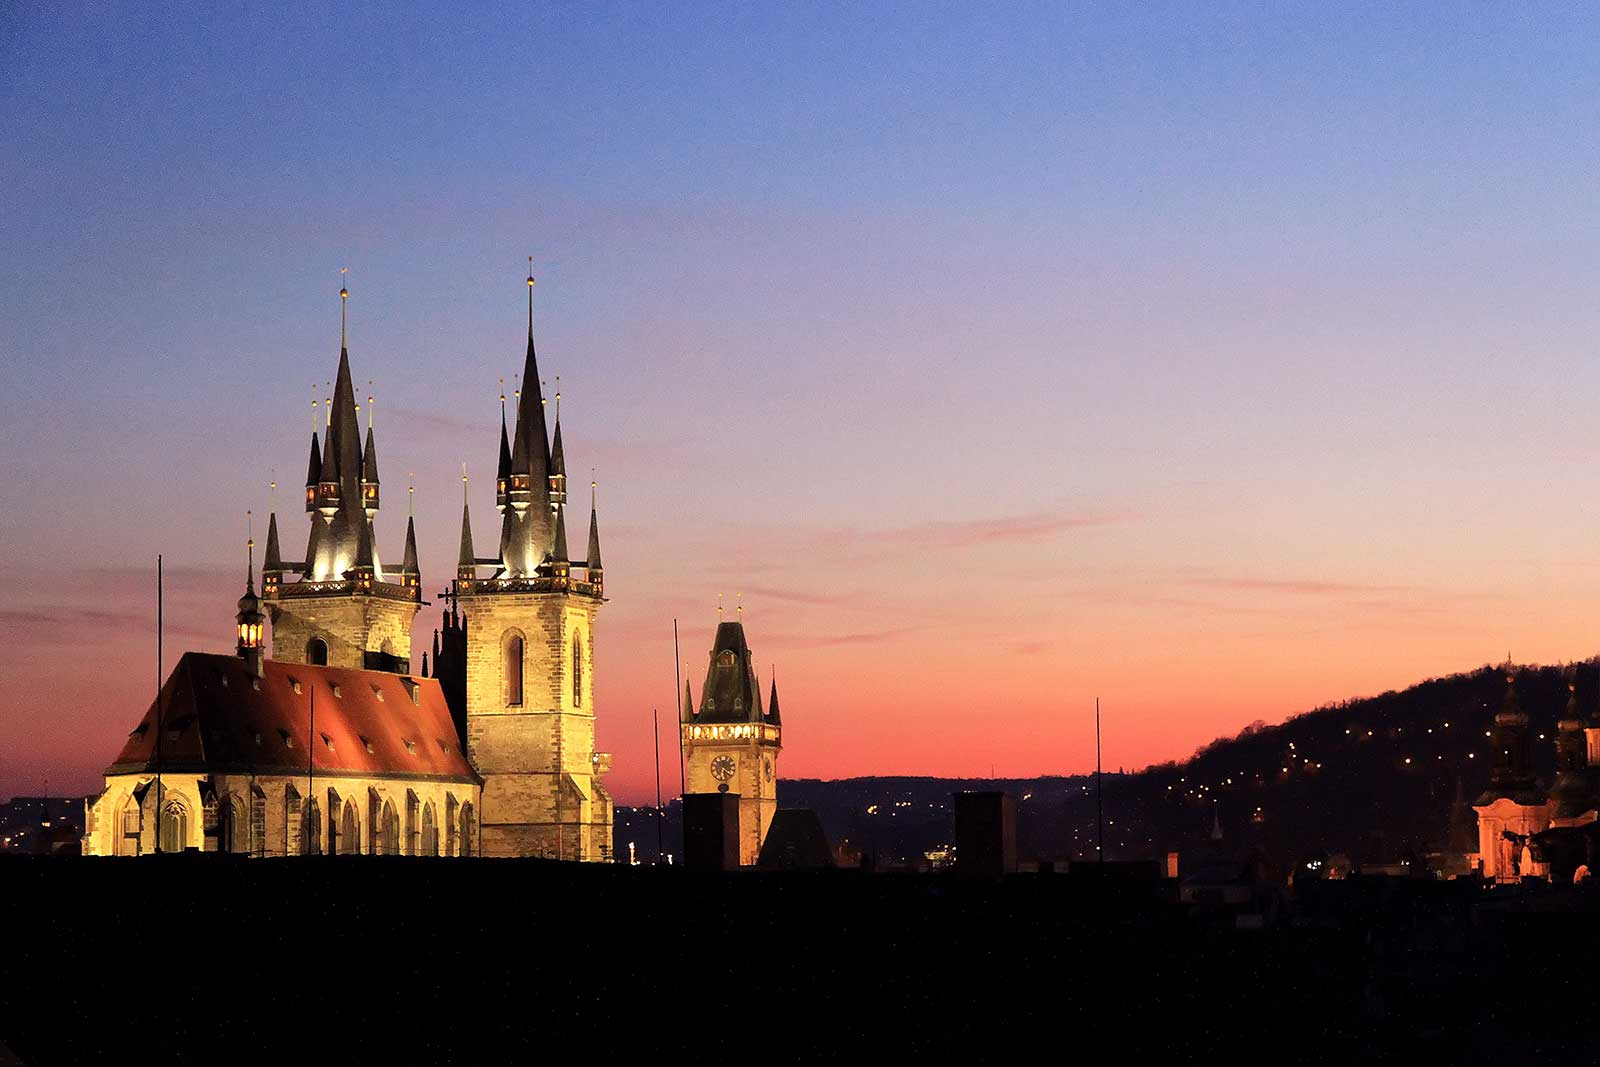 Tyn Church at night in Prague, Czech Republic.